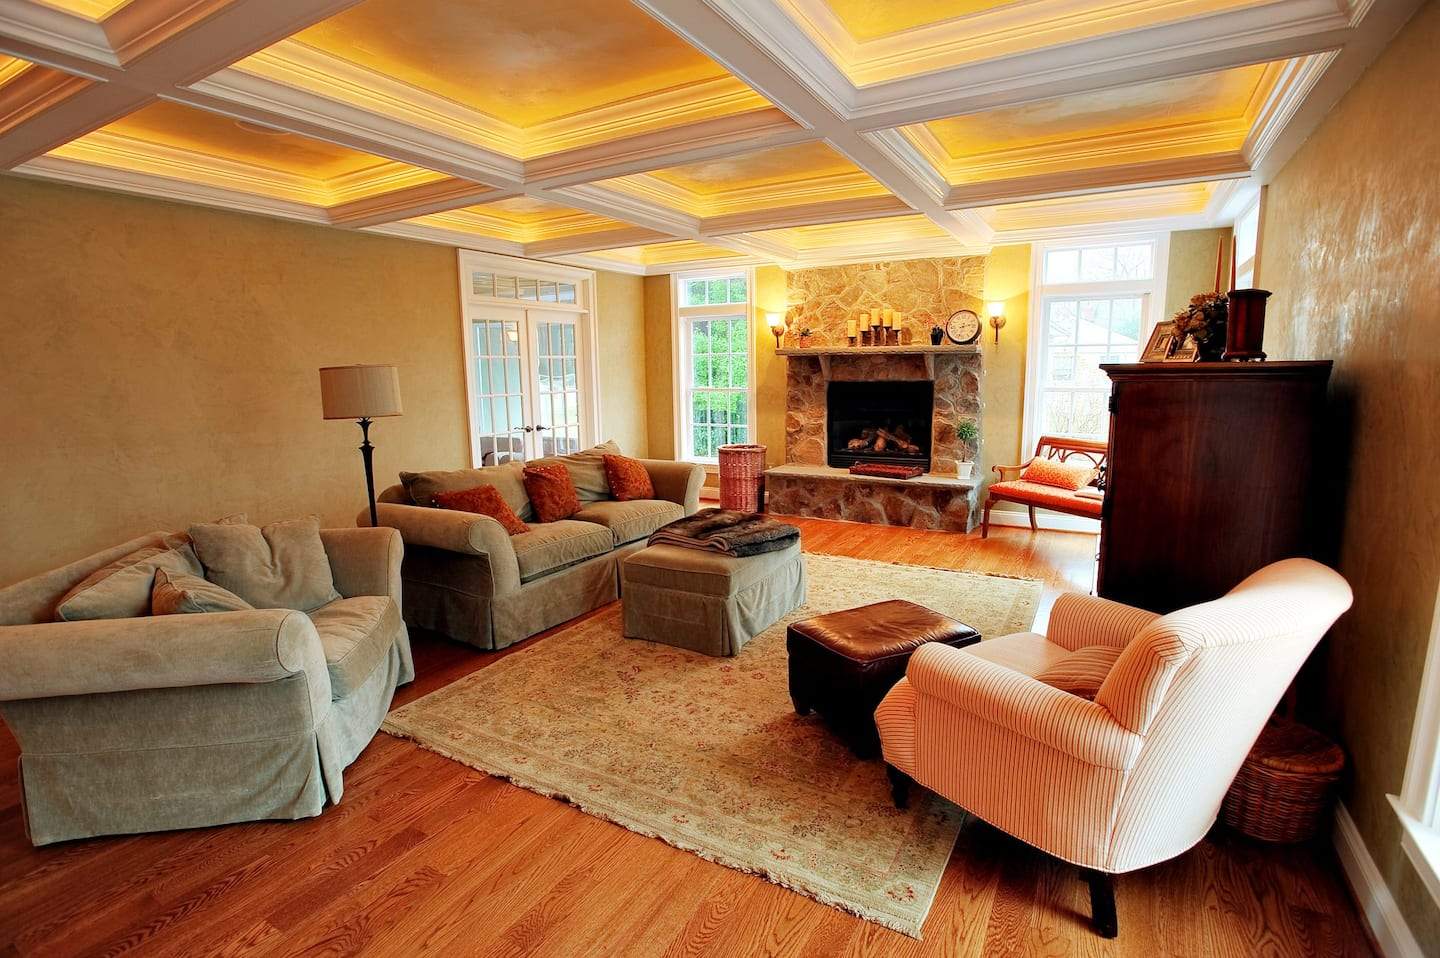 A living room with lights embedded in the crown molding across the ceiling